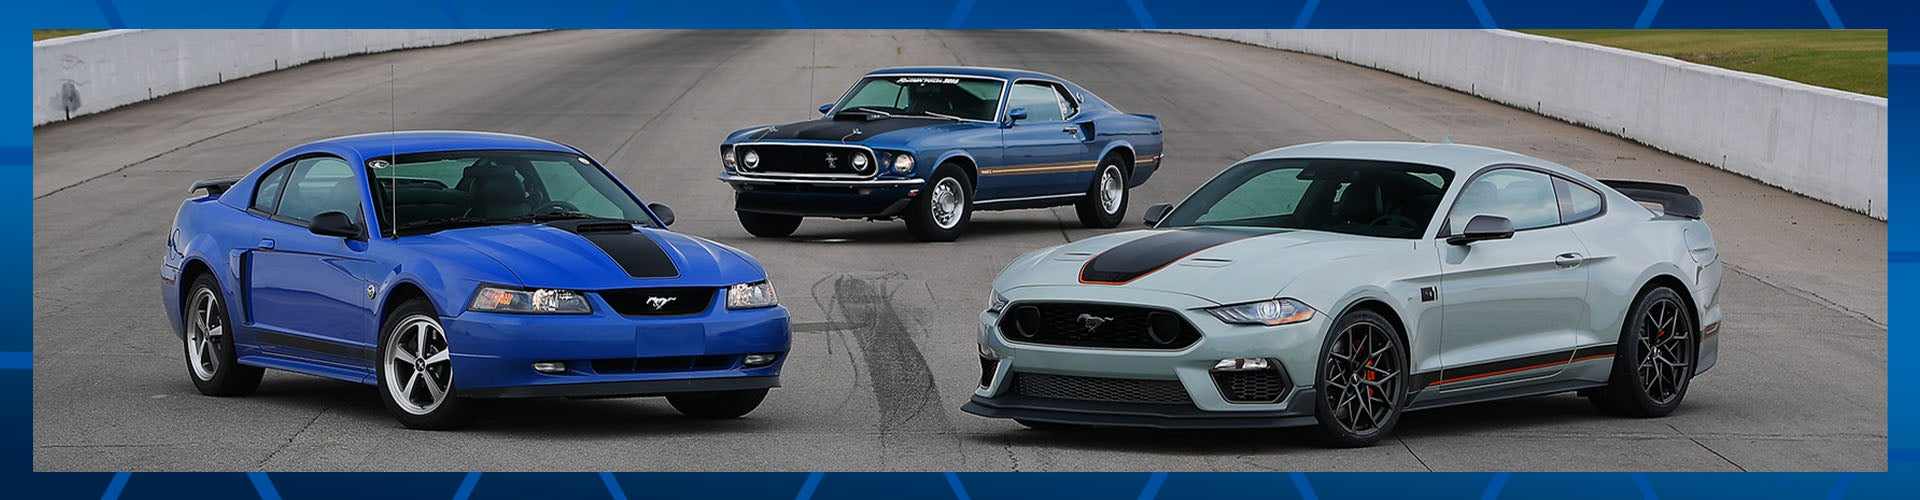 2021 Ford Mustang Mach 1 Photos